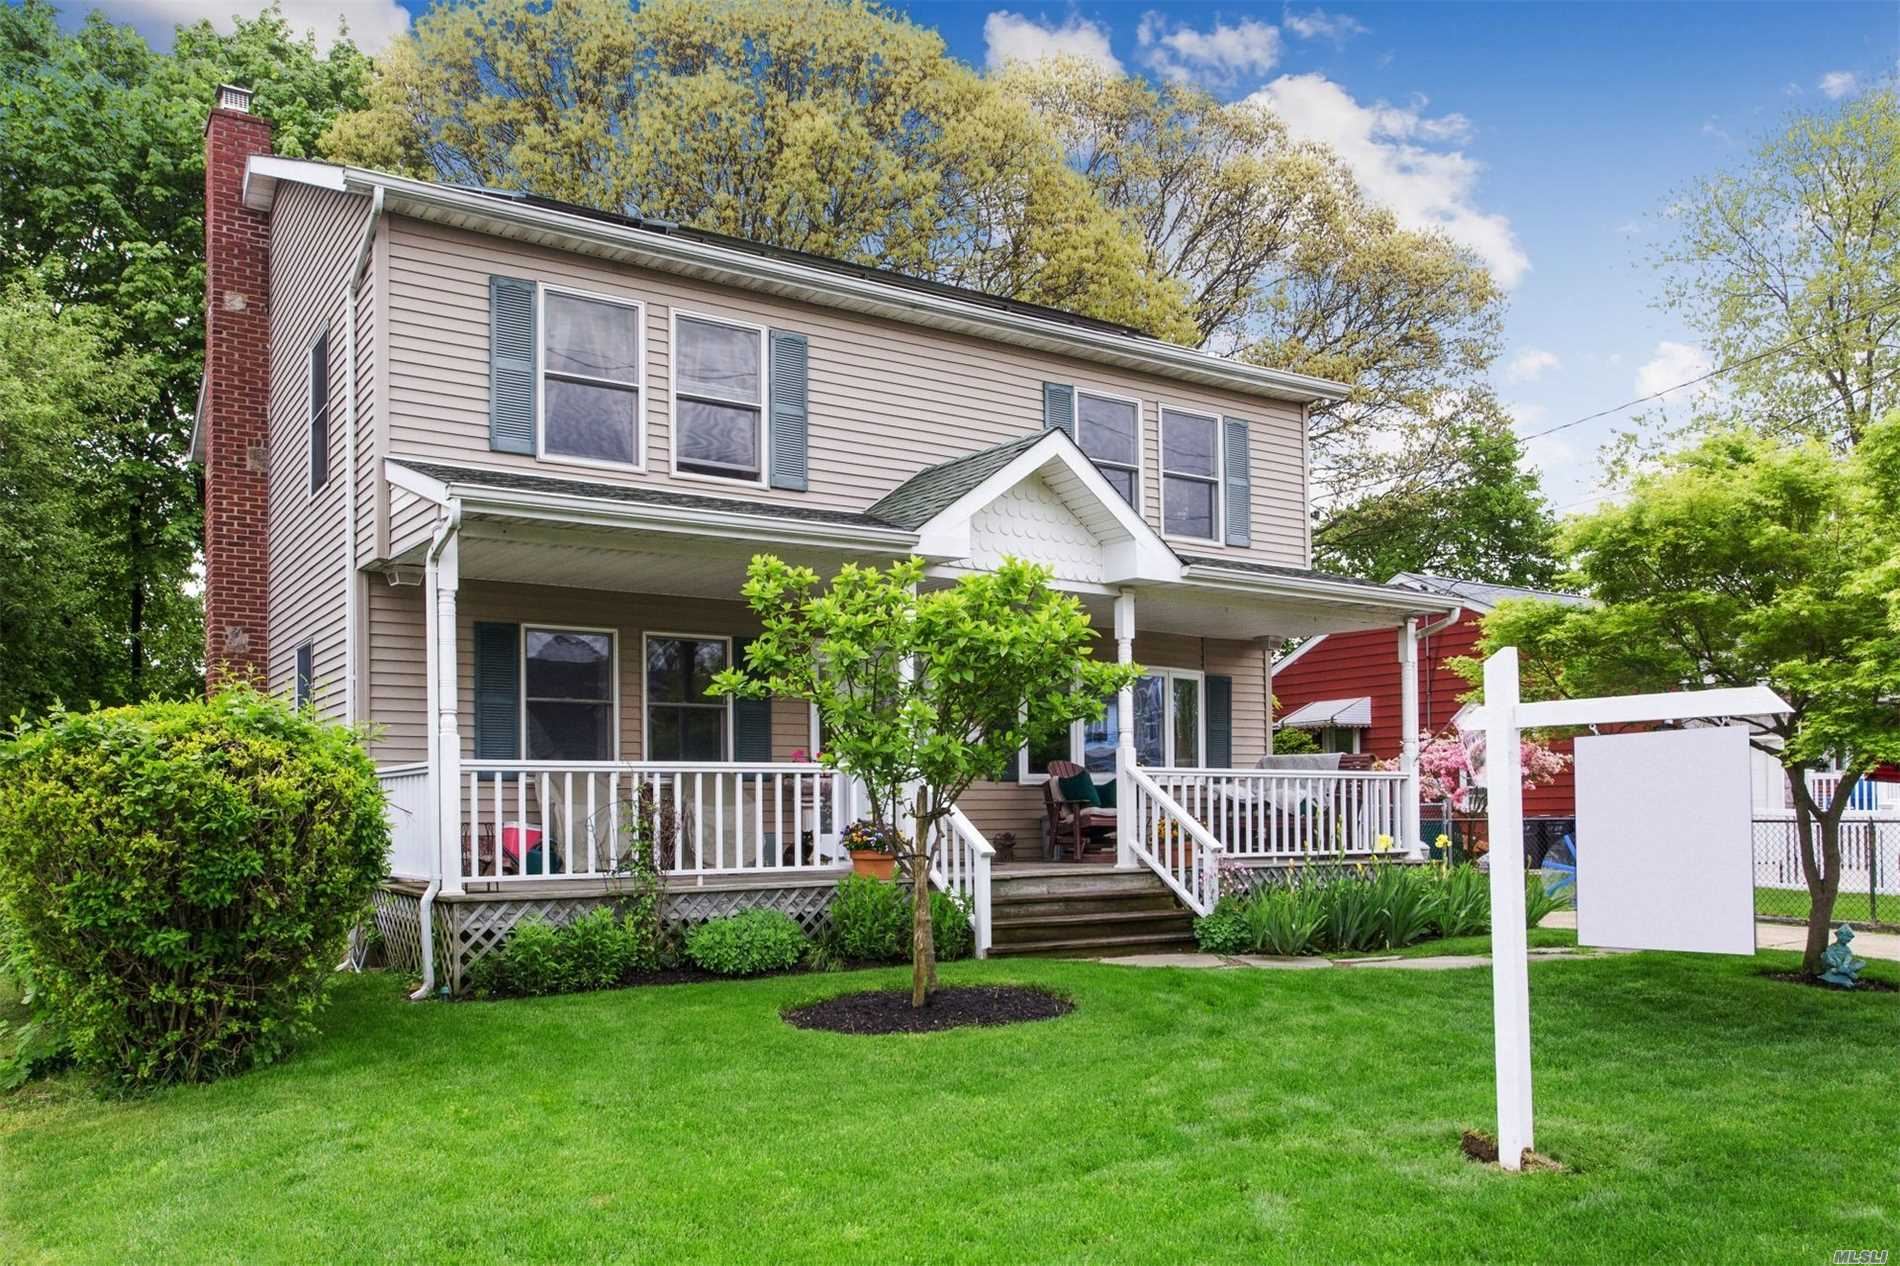 Beautifully maintained, spacious colonial w/park like grounds, cac, energy saving solar panels, lovely front porch, oversized dining and living rooms, 4 nice sized bedrooms, partially finished basement, approximately 1 mile to train station.